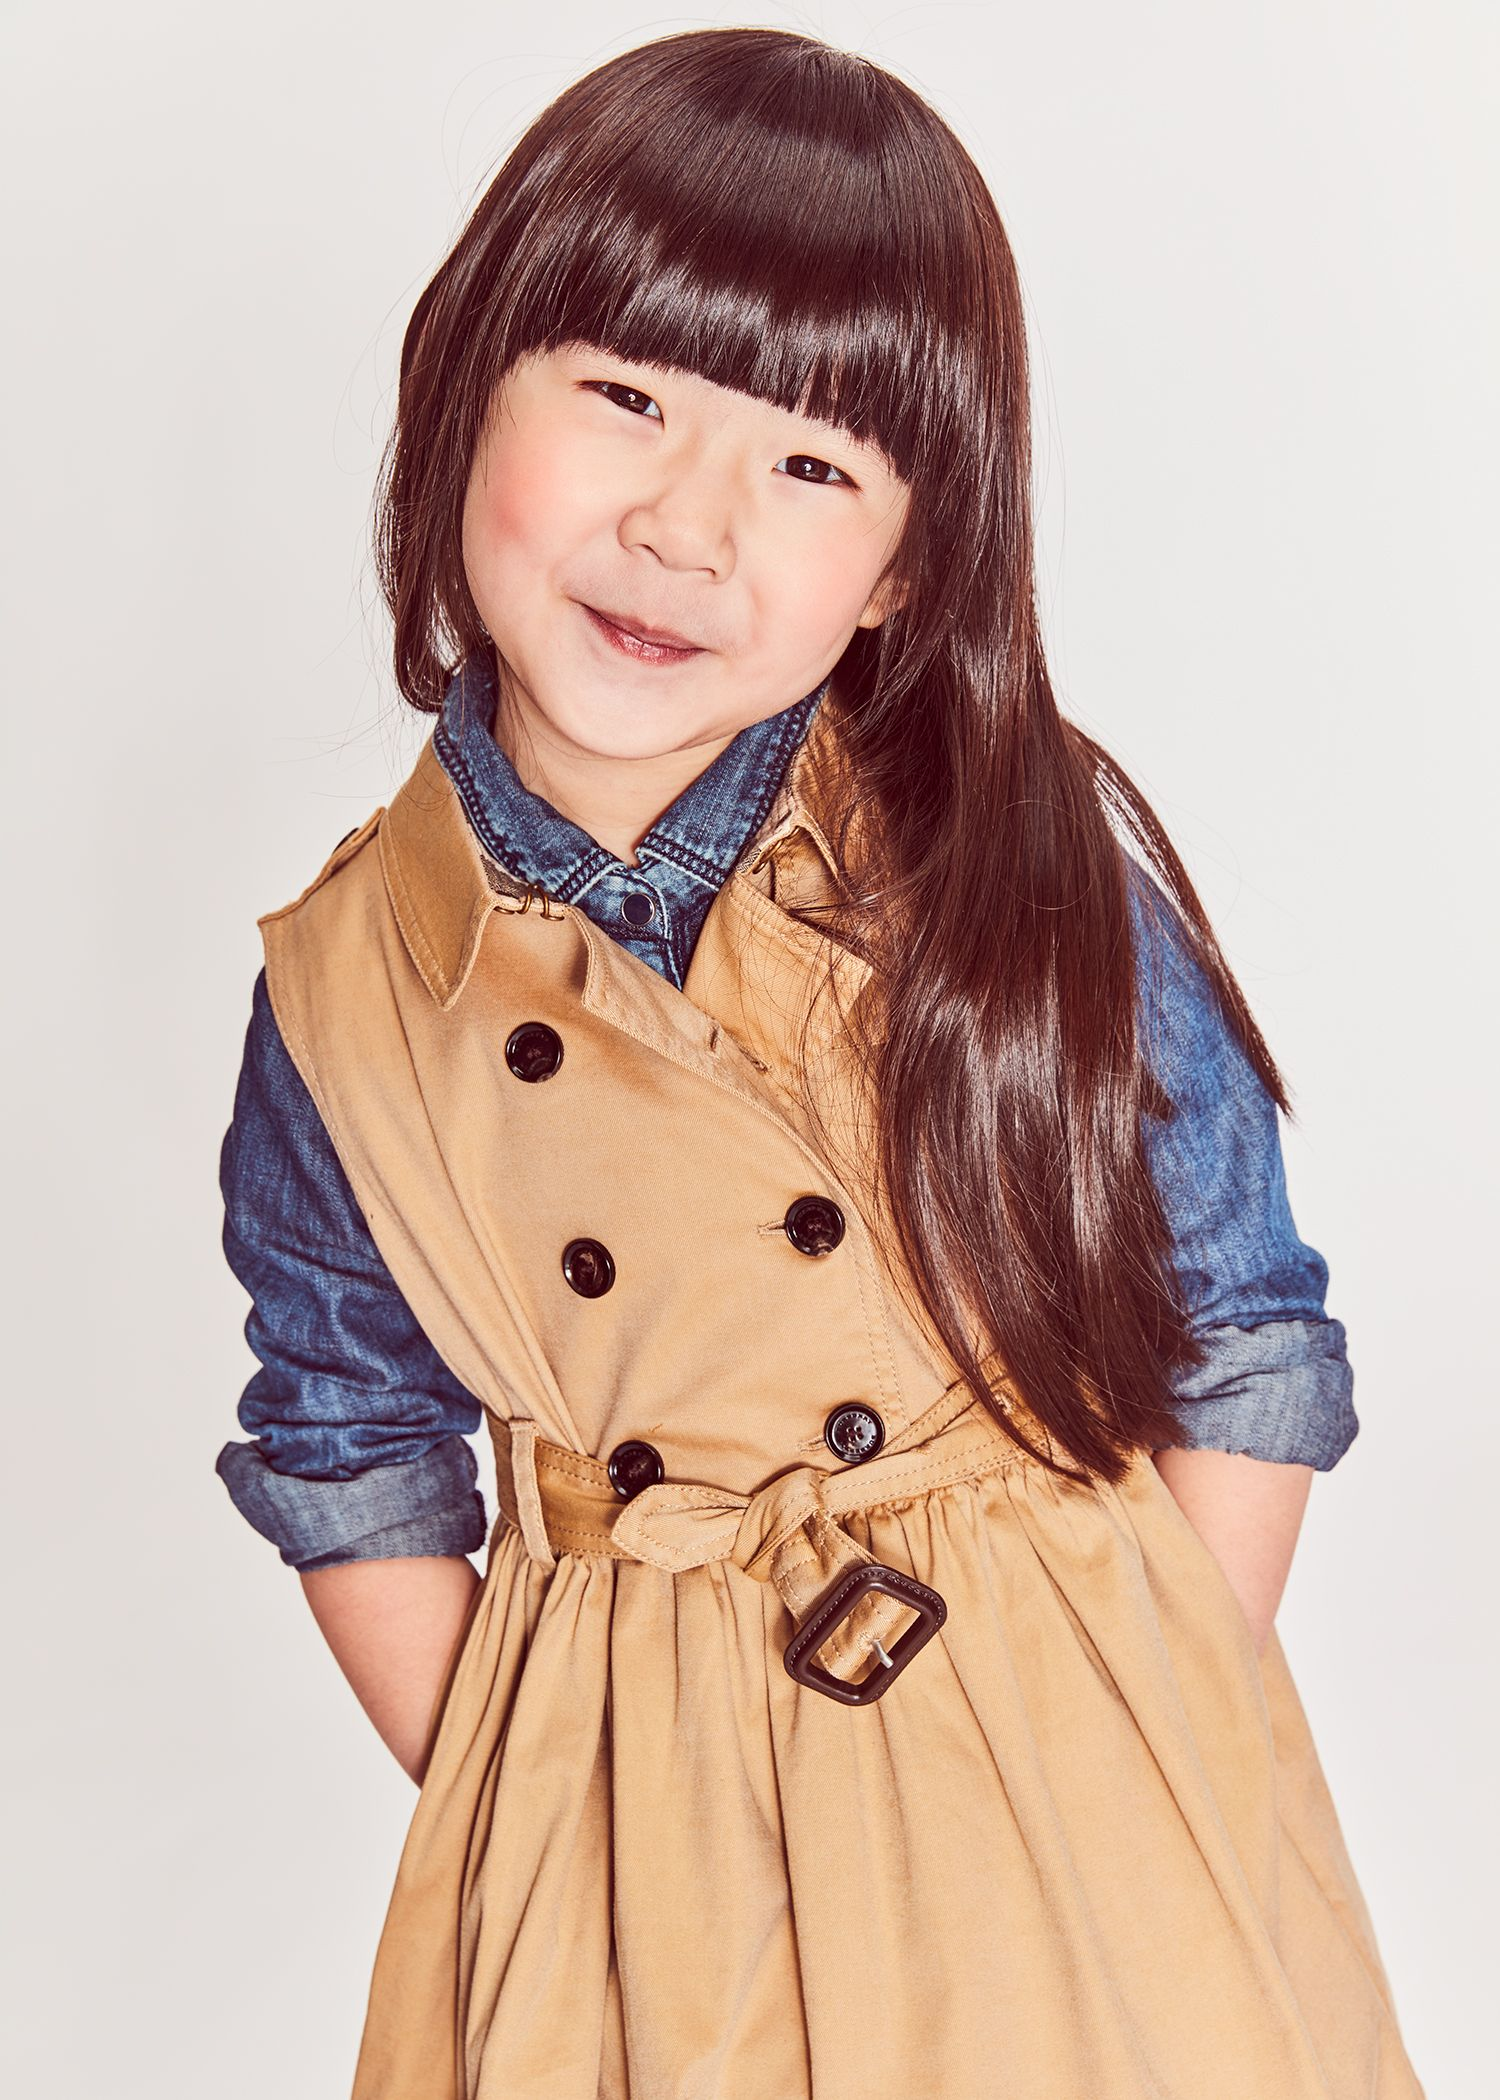 712b0aea9 Children Clothing · Shop from the products publiushed on our newsletter.  Explore the vast array of luxury designer